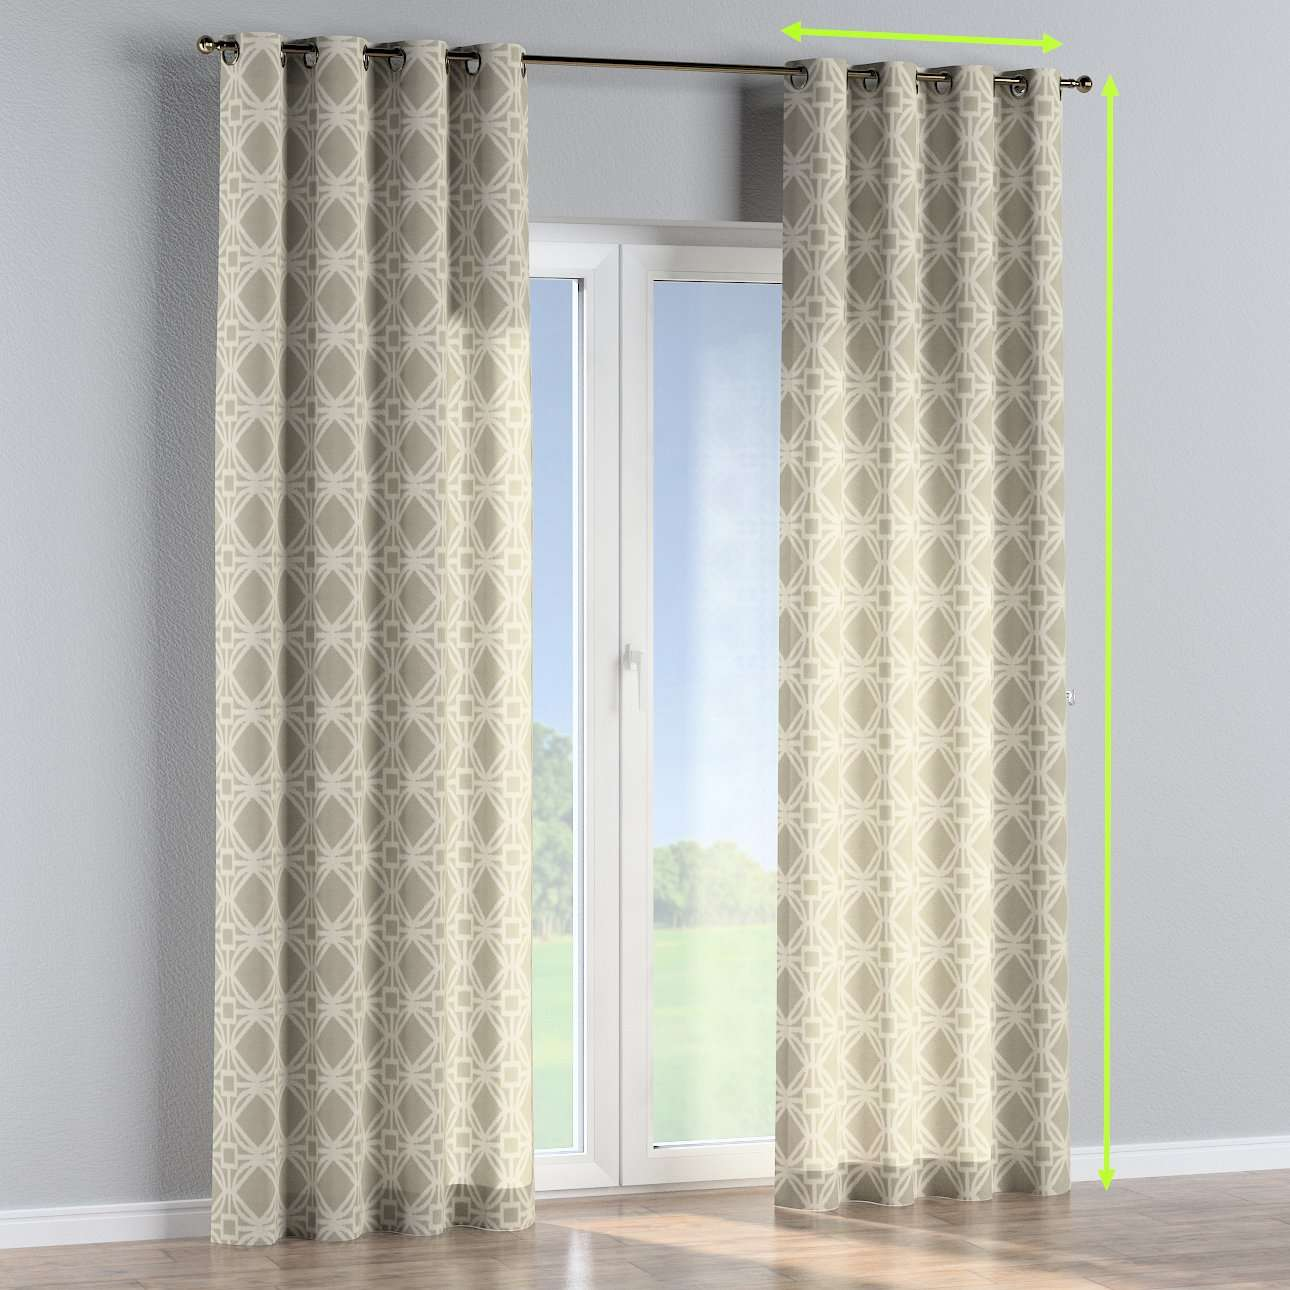 Eyelet lined curtains in collection Comic Book & Geo Prints, fabric: 141-56